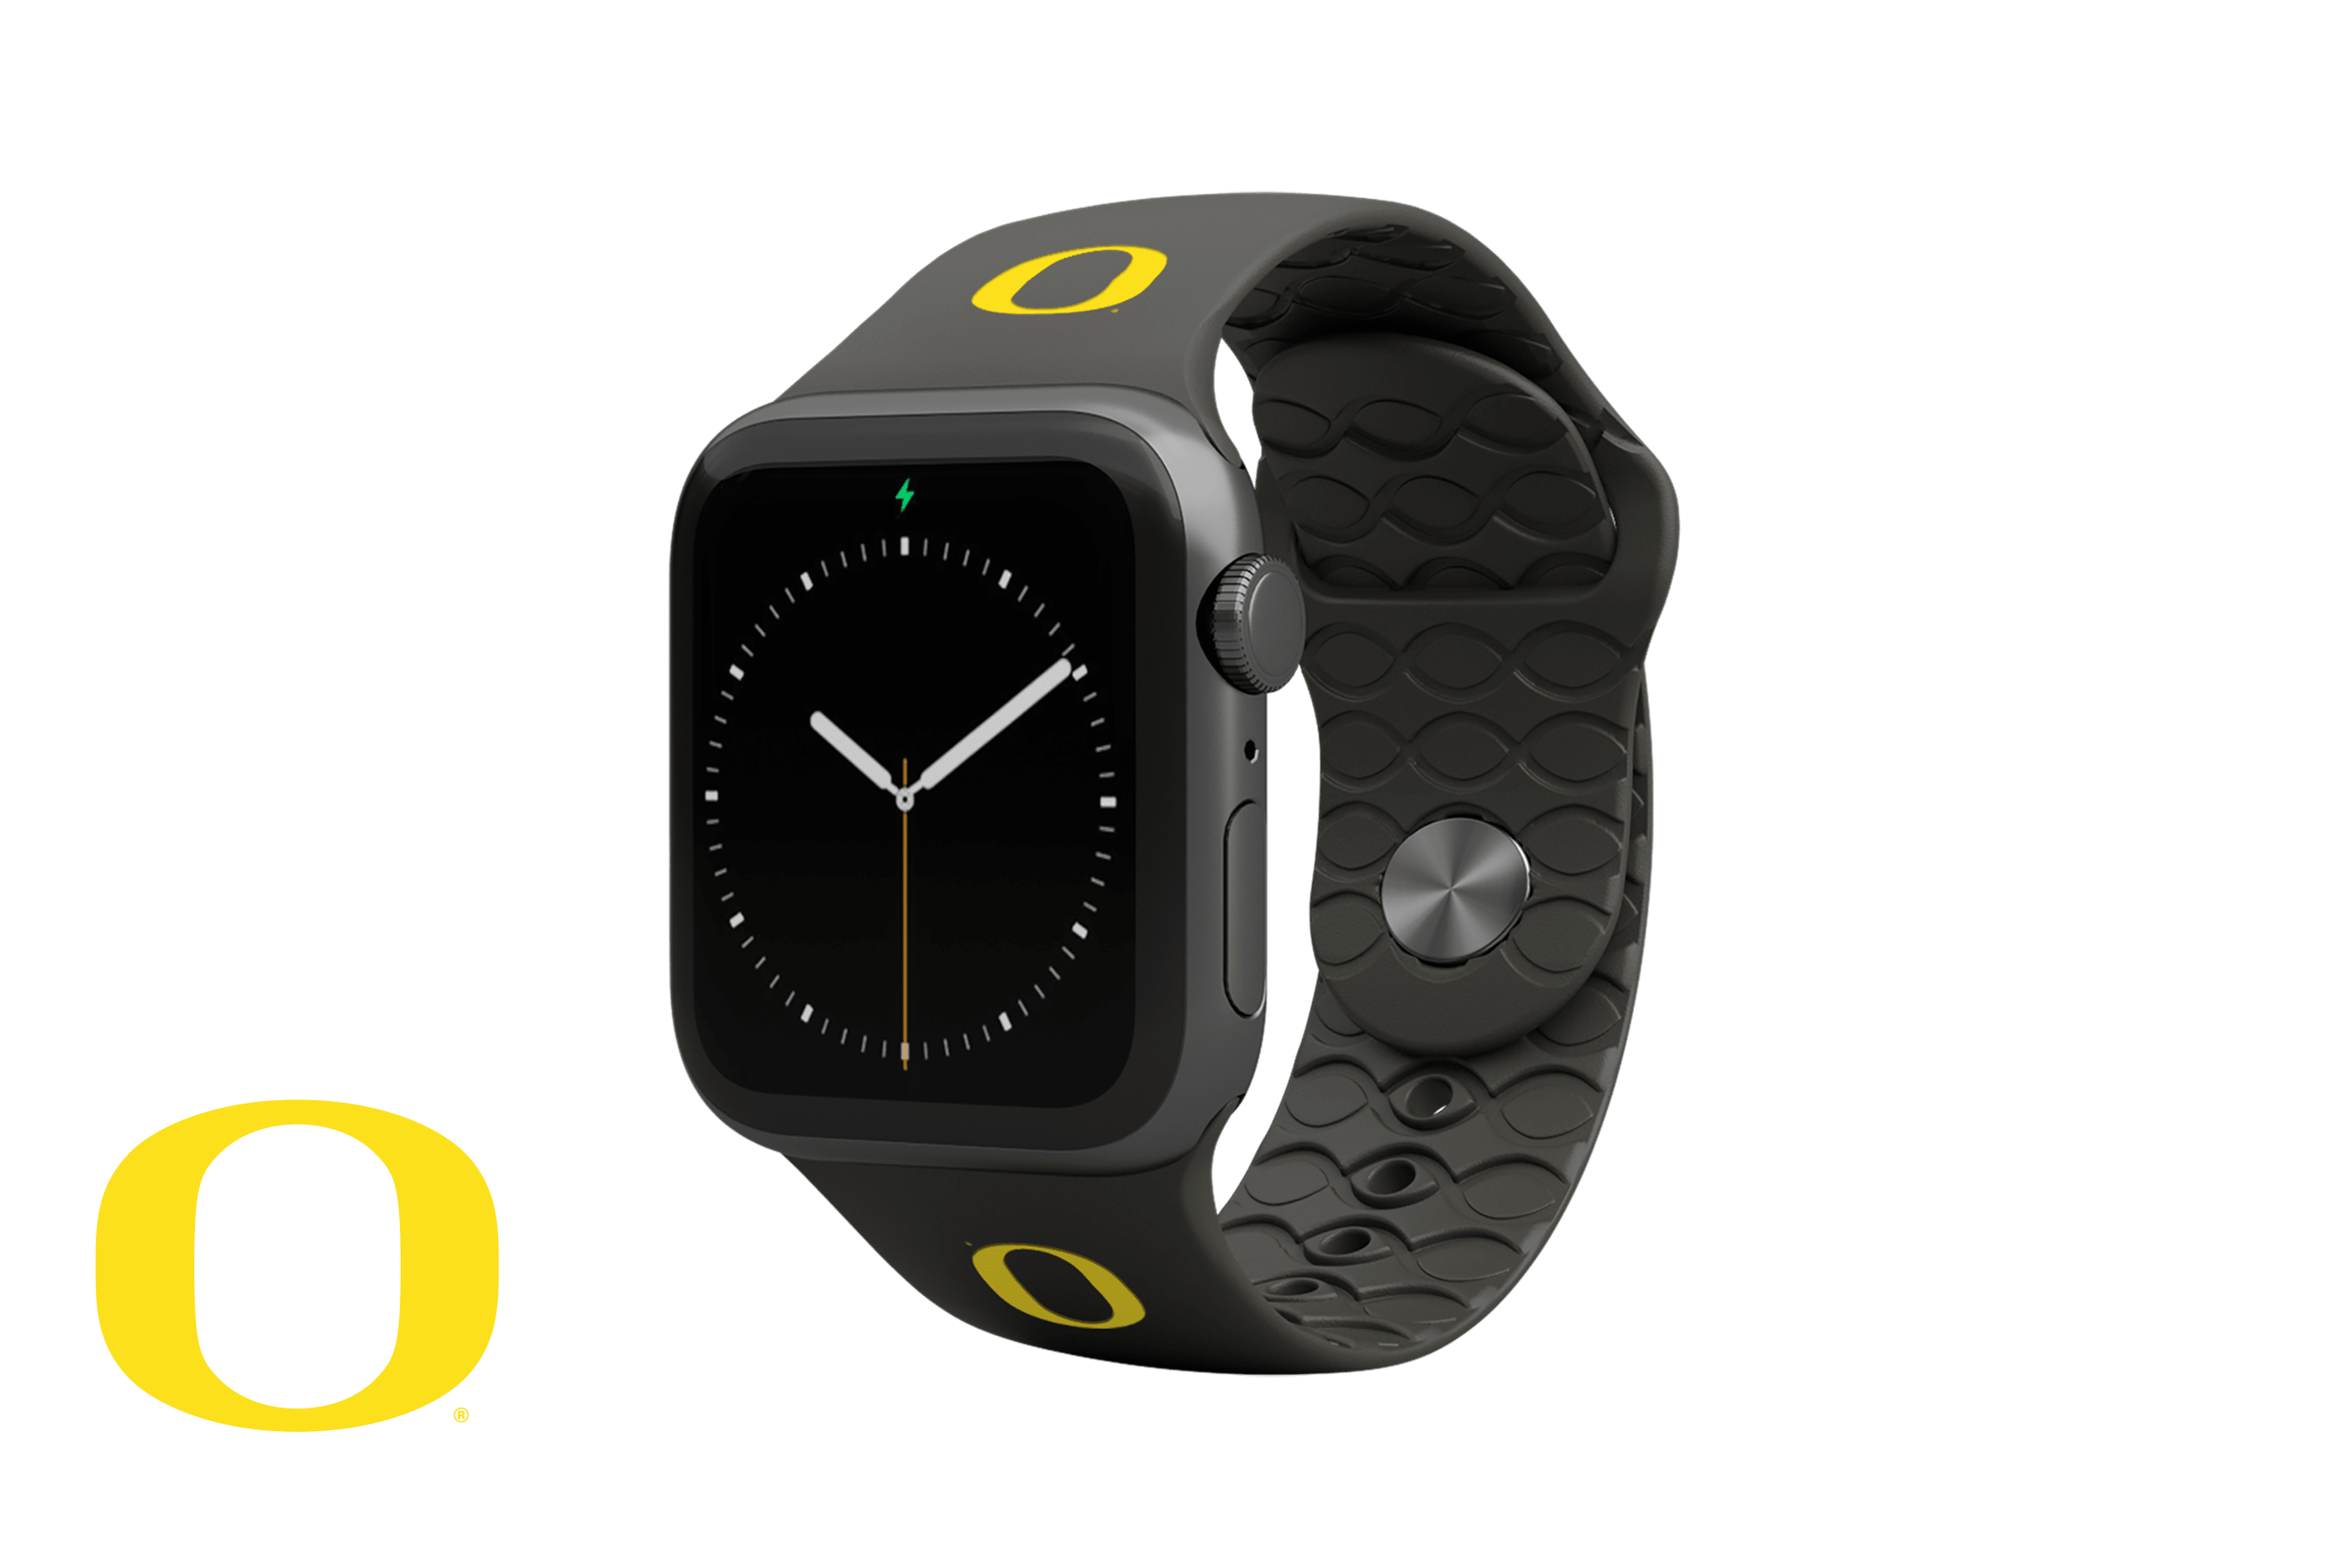 Apple Watch Band College Oregon Black with gray hardware viewed front on